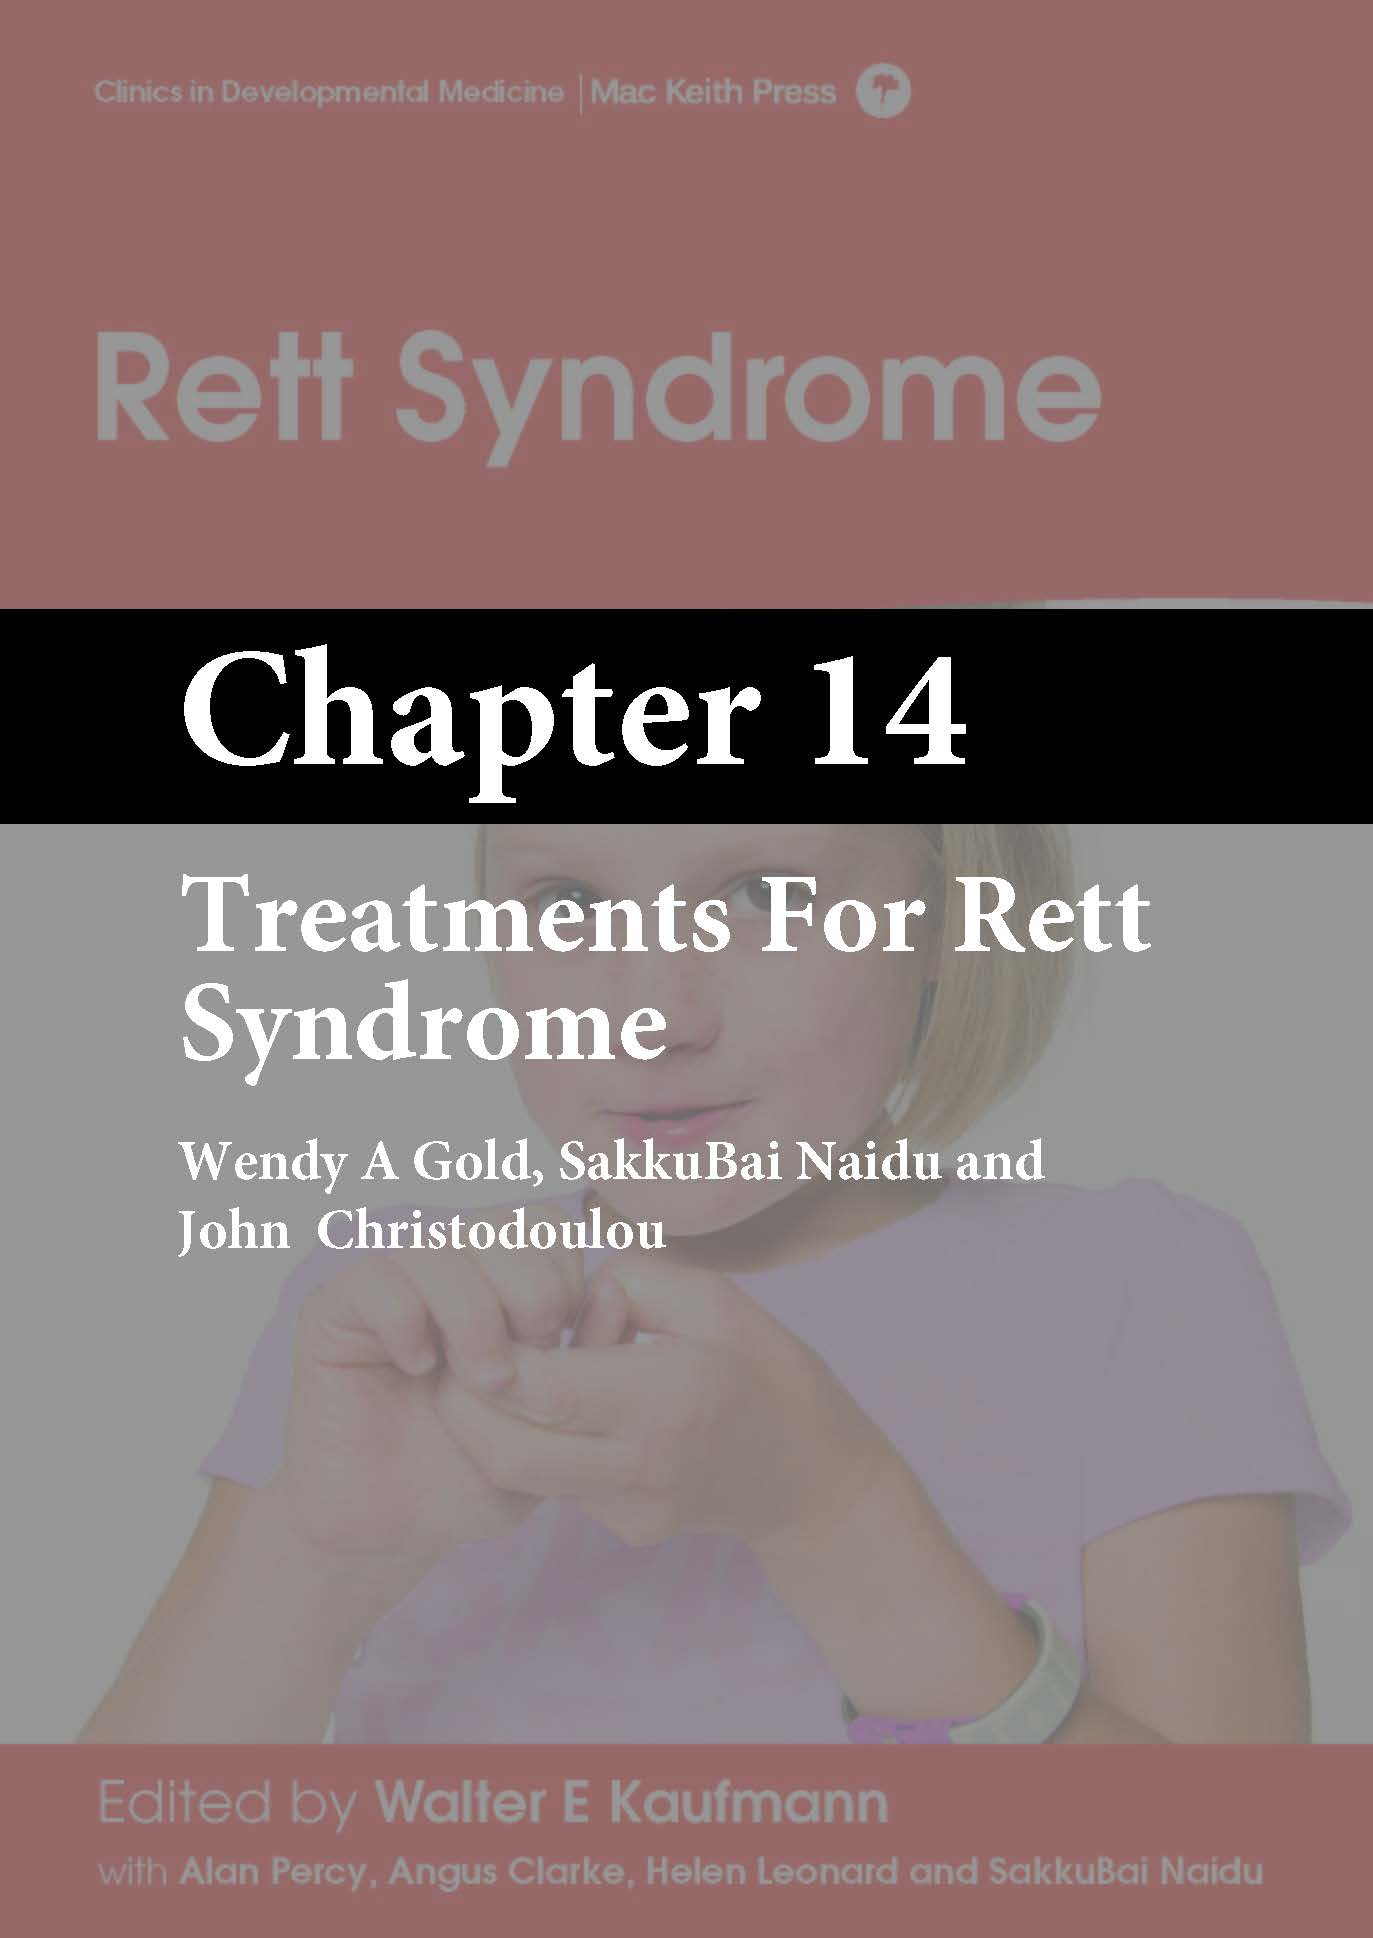 Rett Syndrome, Kaufmann, Chapter 14 cover